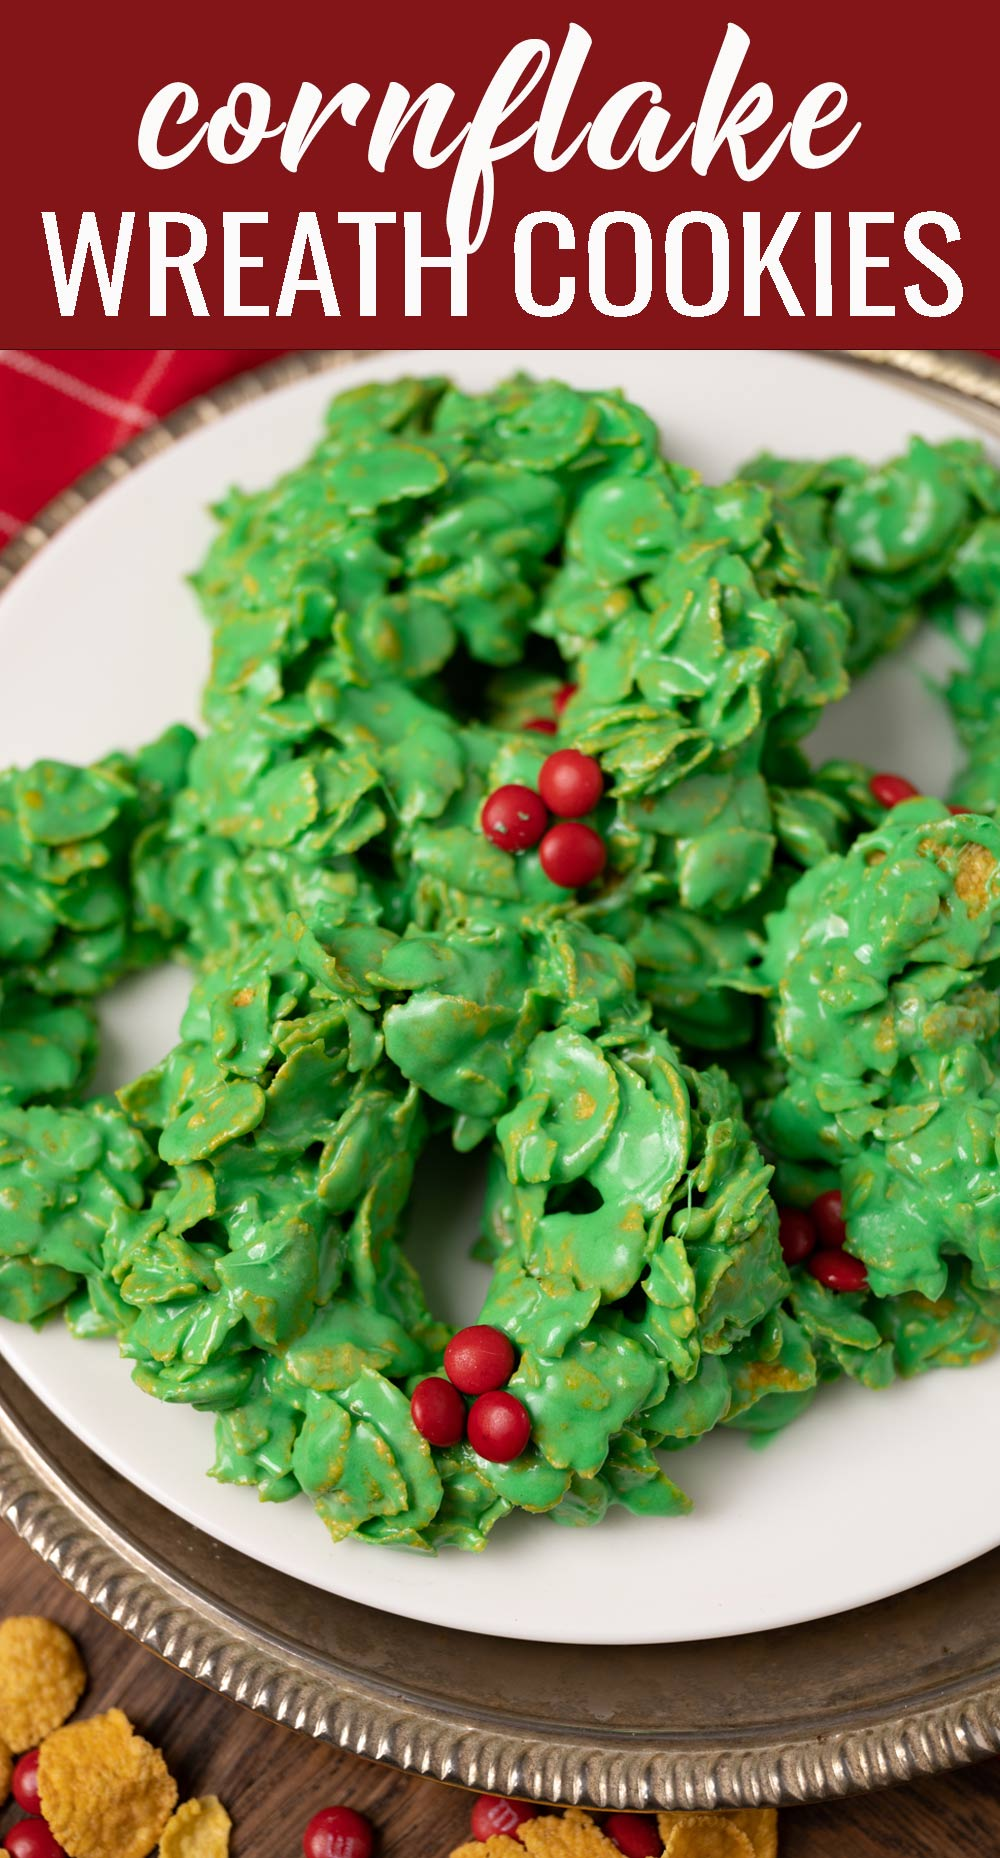 There's nothing prettier for your Christmas cookie plate than these no bake Cornflake Wreath Cookies with mini M&Ms. Let the kids join in on the fun! via @tastesoflizzyt